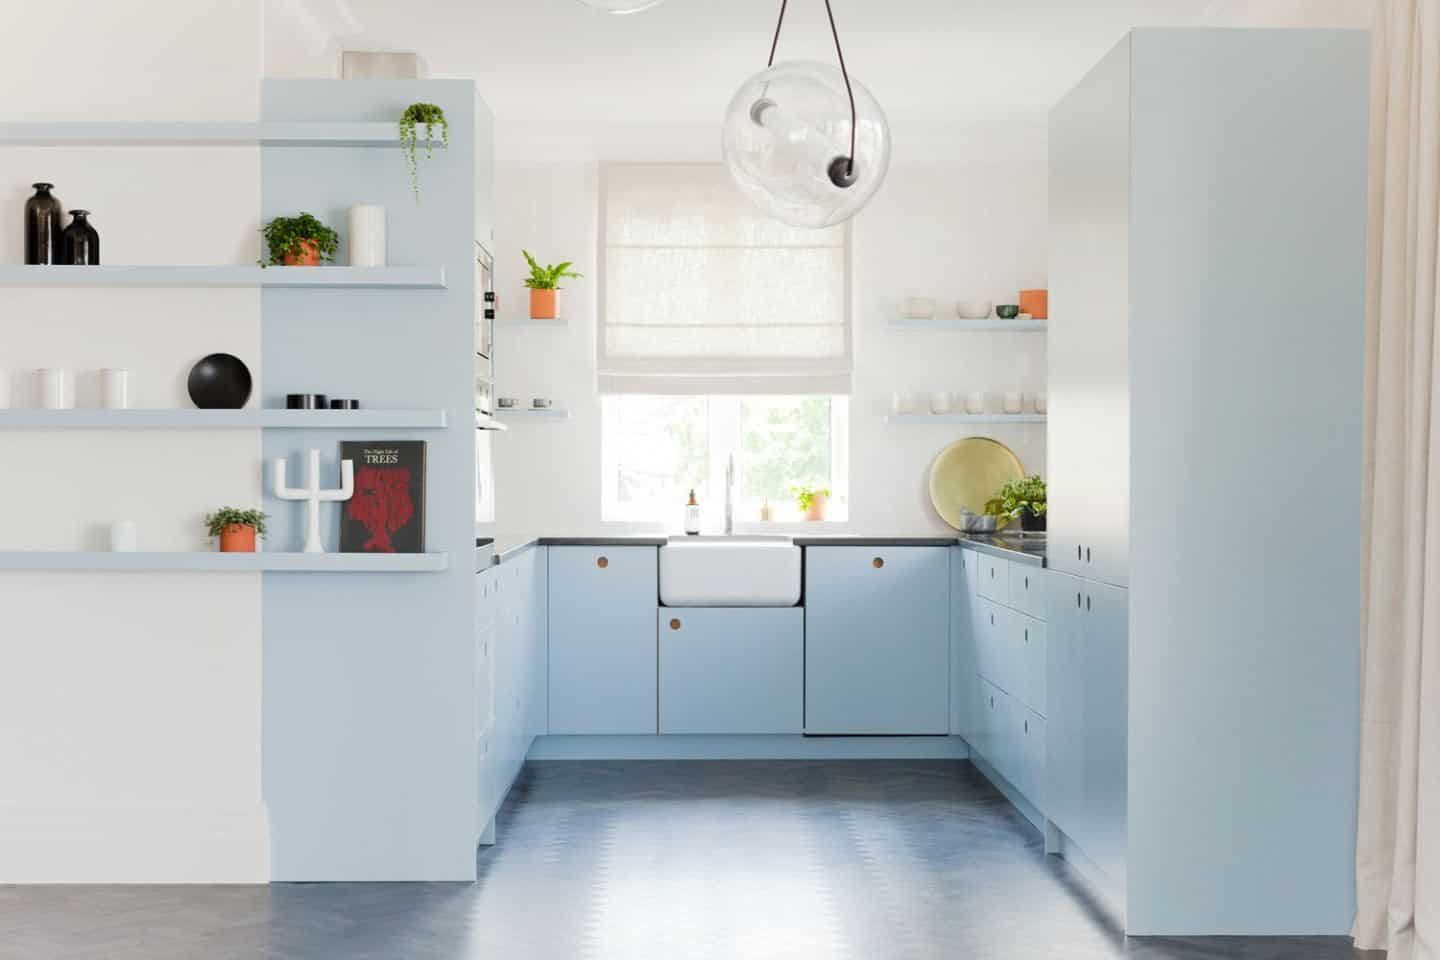 Kew Kitchen project by 2LG Studio - Photography by Megan Taylor